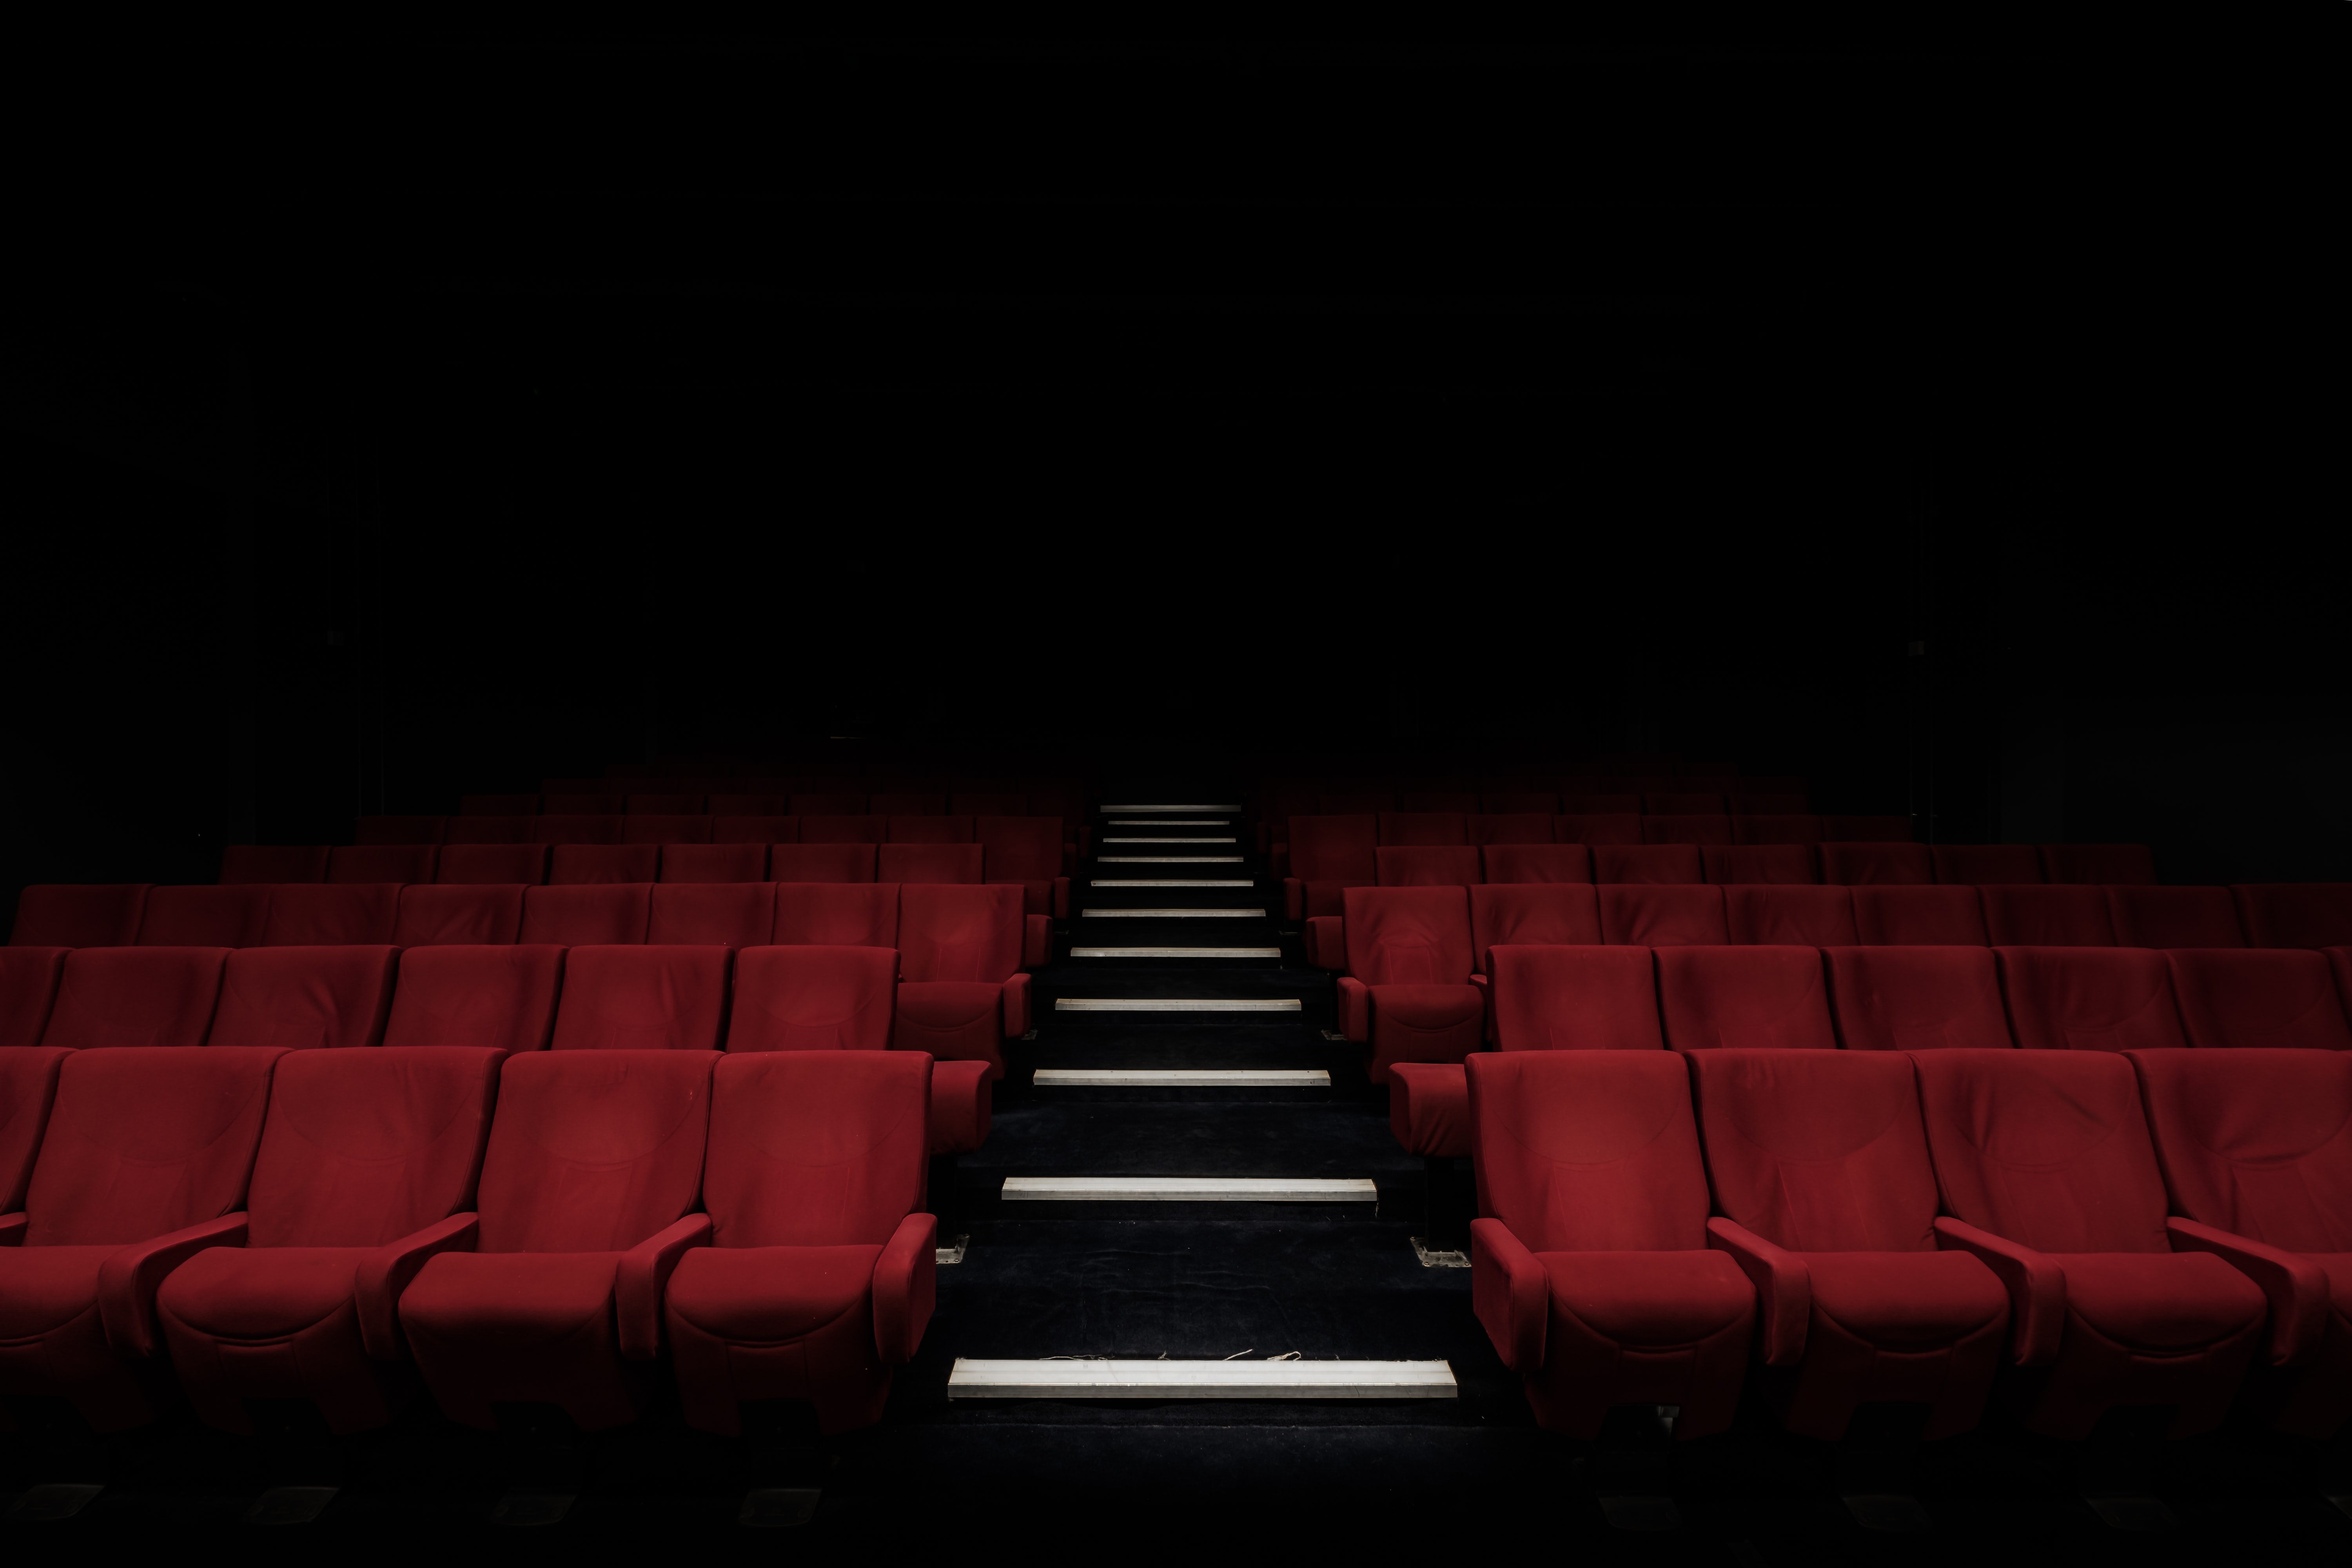 Red theater seats that you would find when watching Christian films